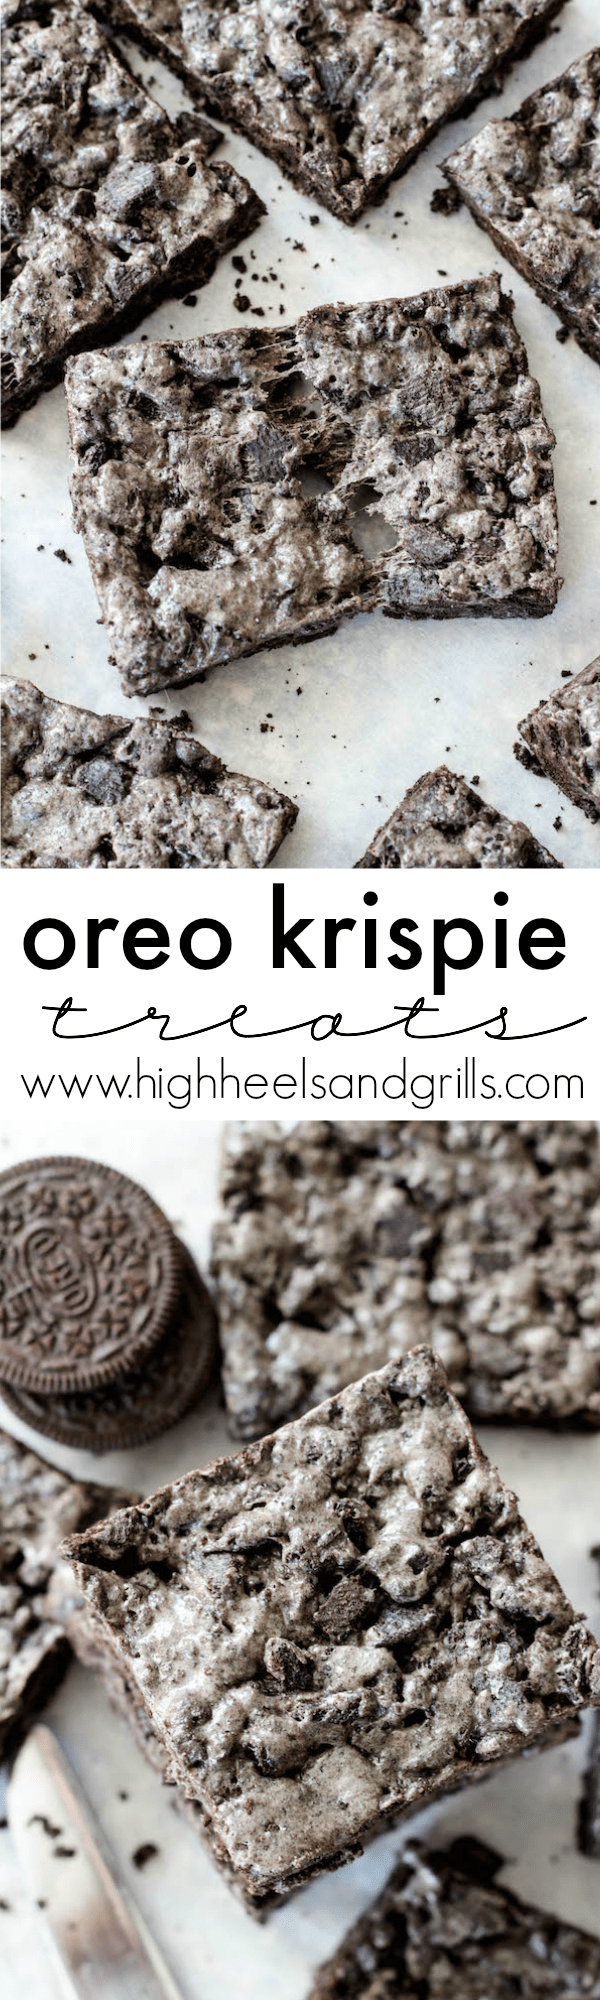 Oreo krispie treats recipe